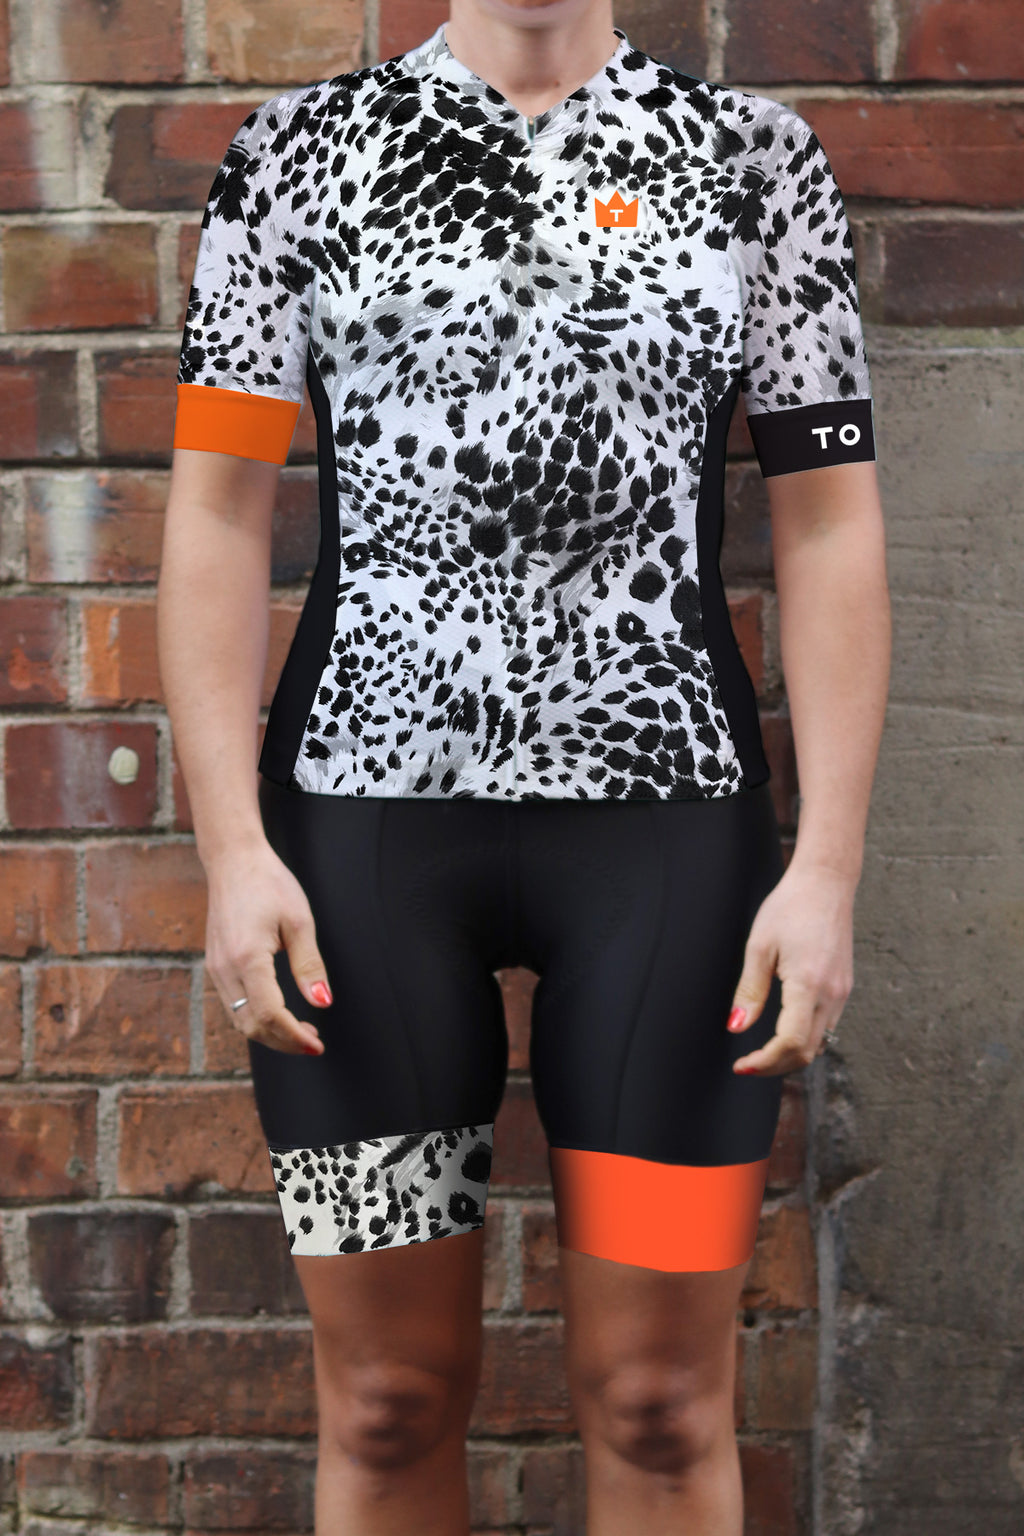 WILDE - Limited Edition Womens ProX2 Jersey - Black/White/Tangerine